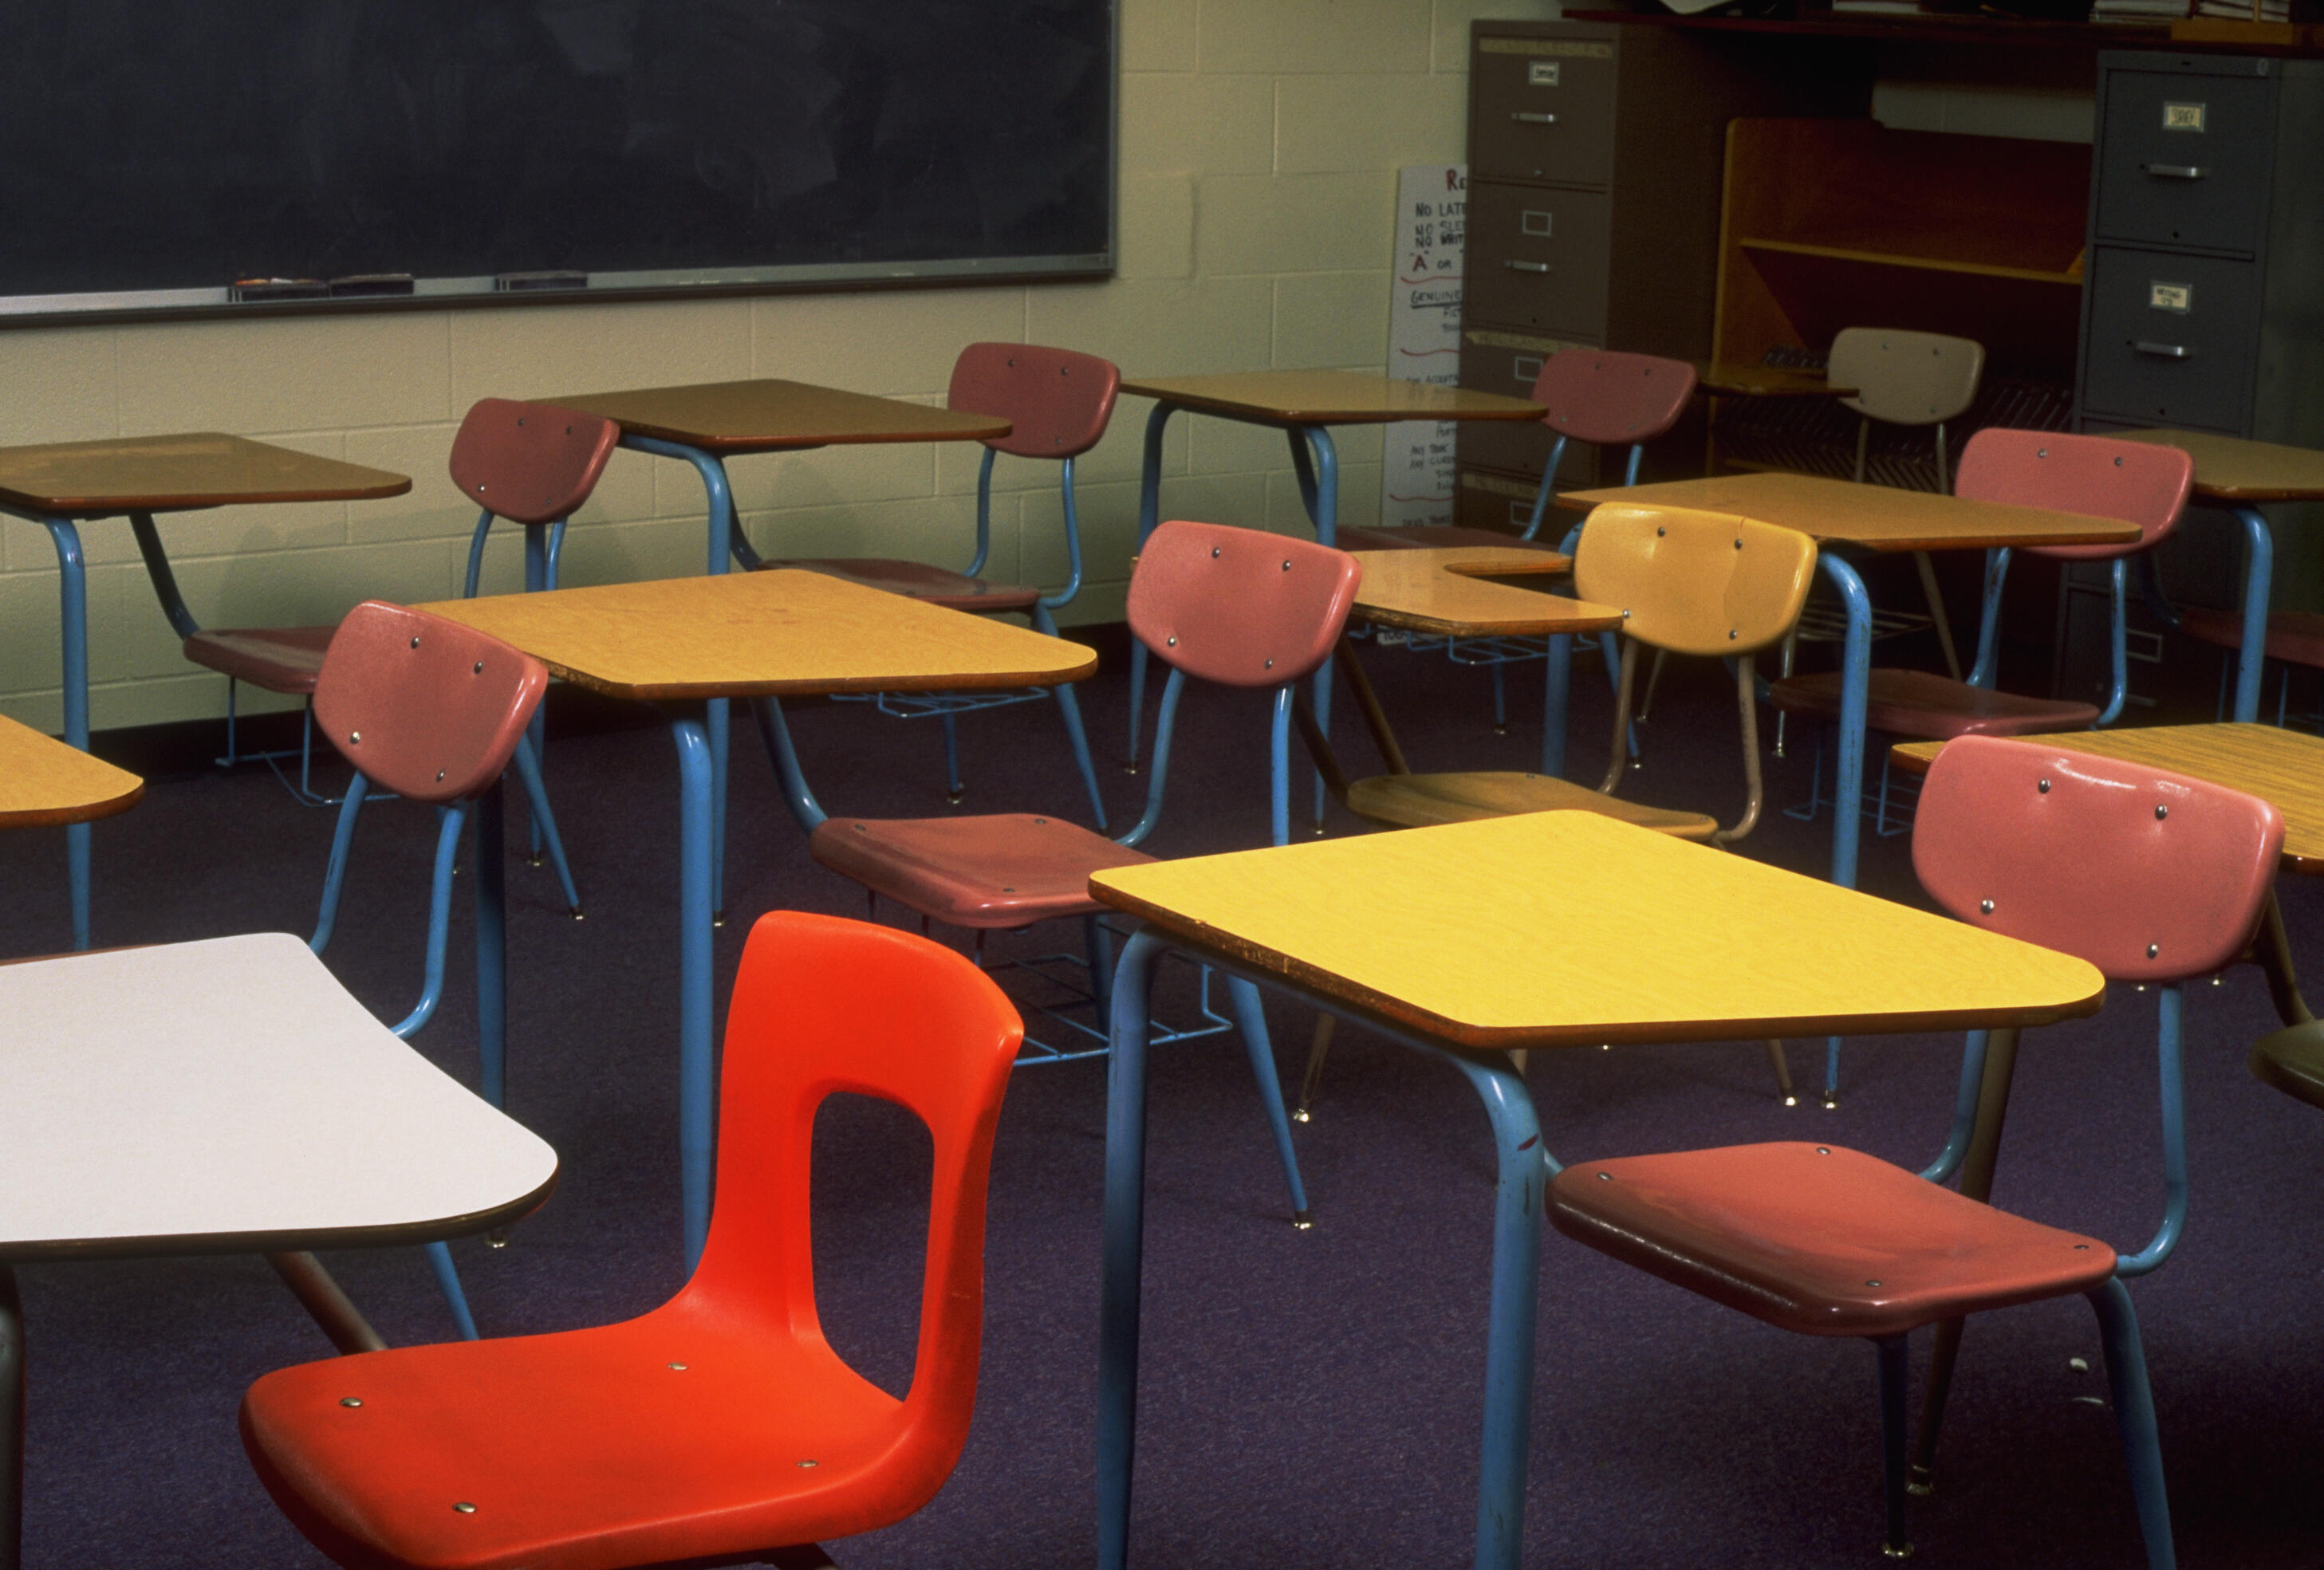 emptyclass-gettyimages-524661304